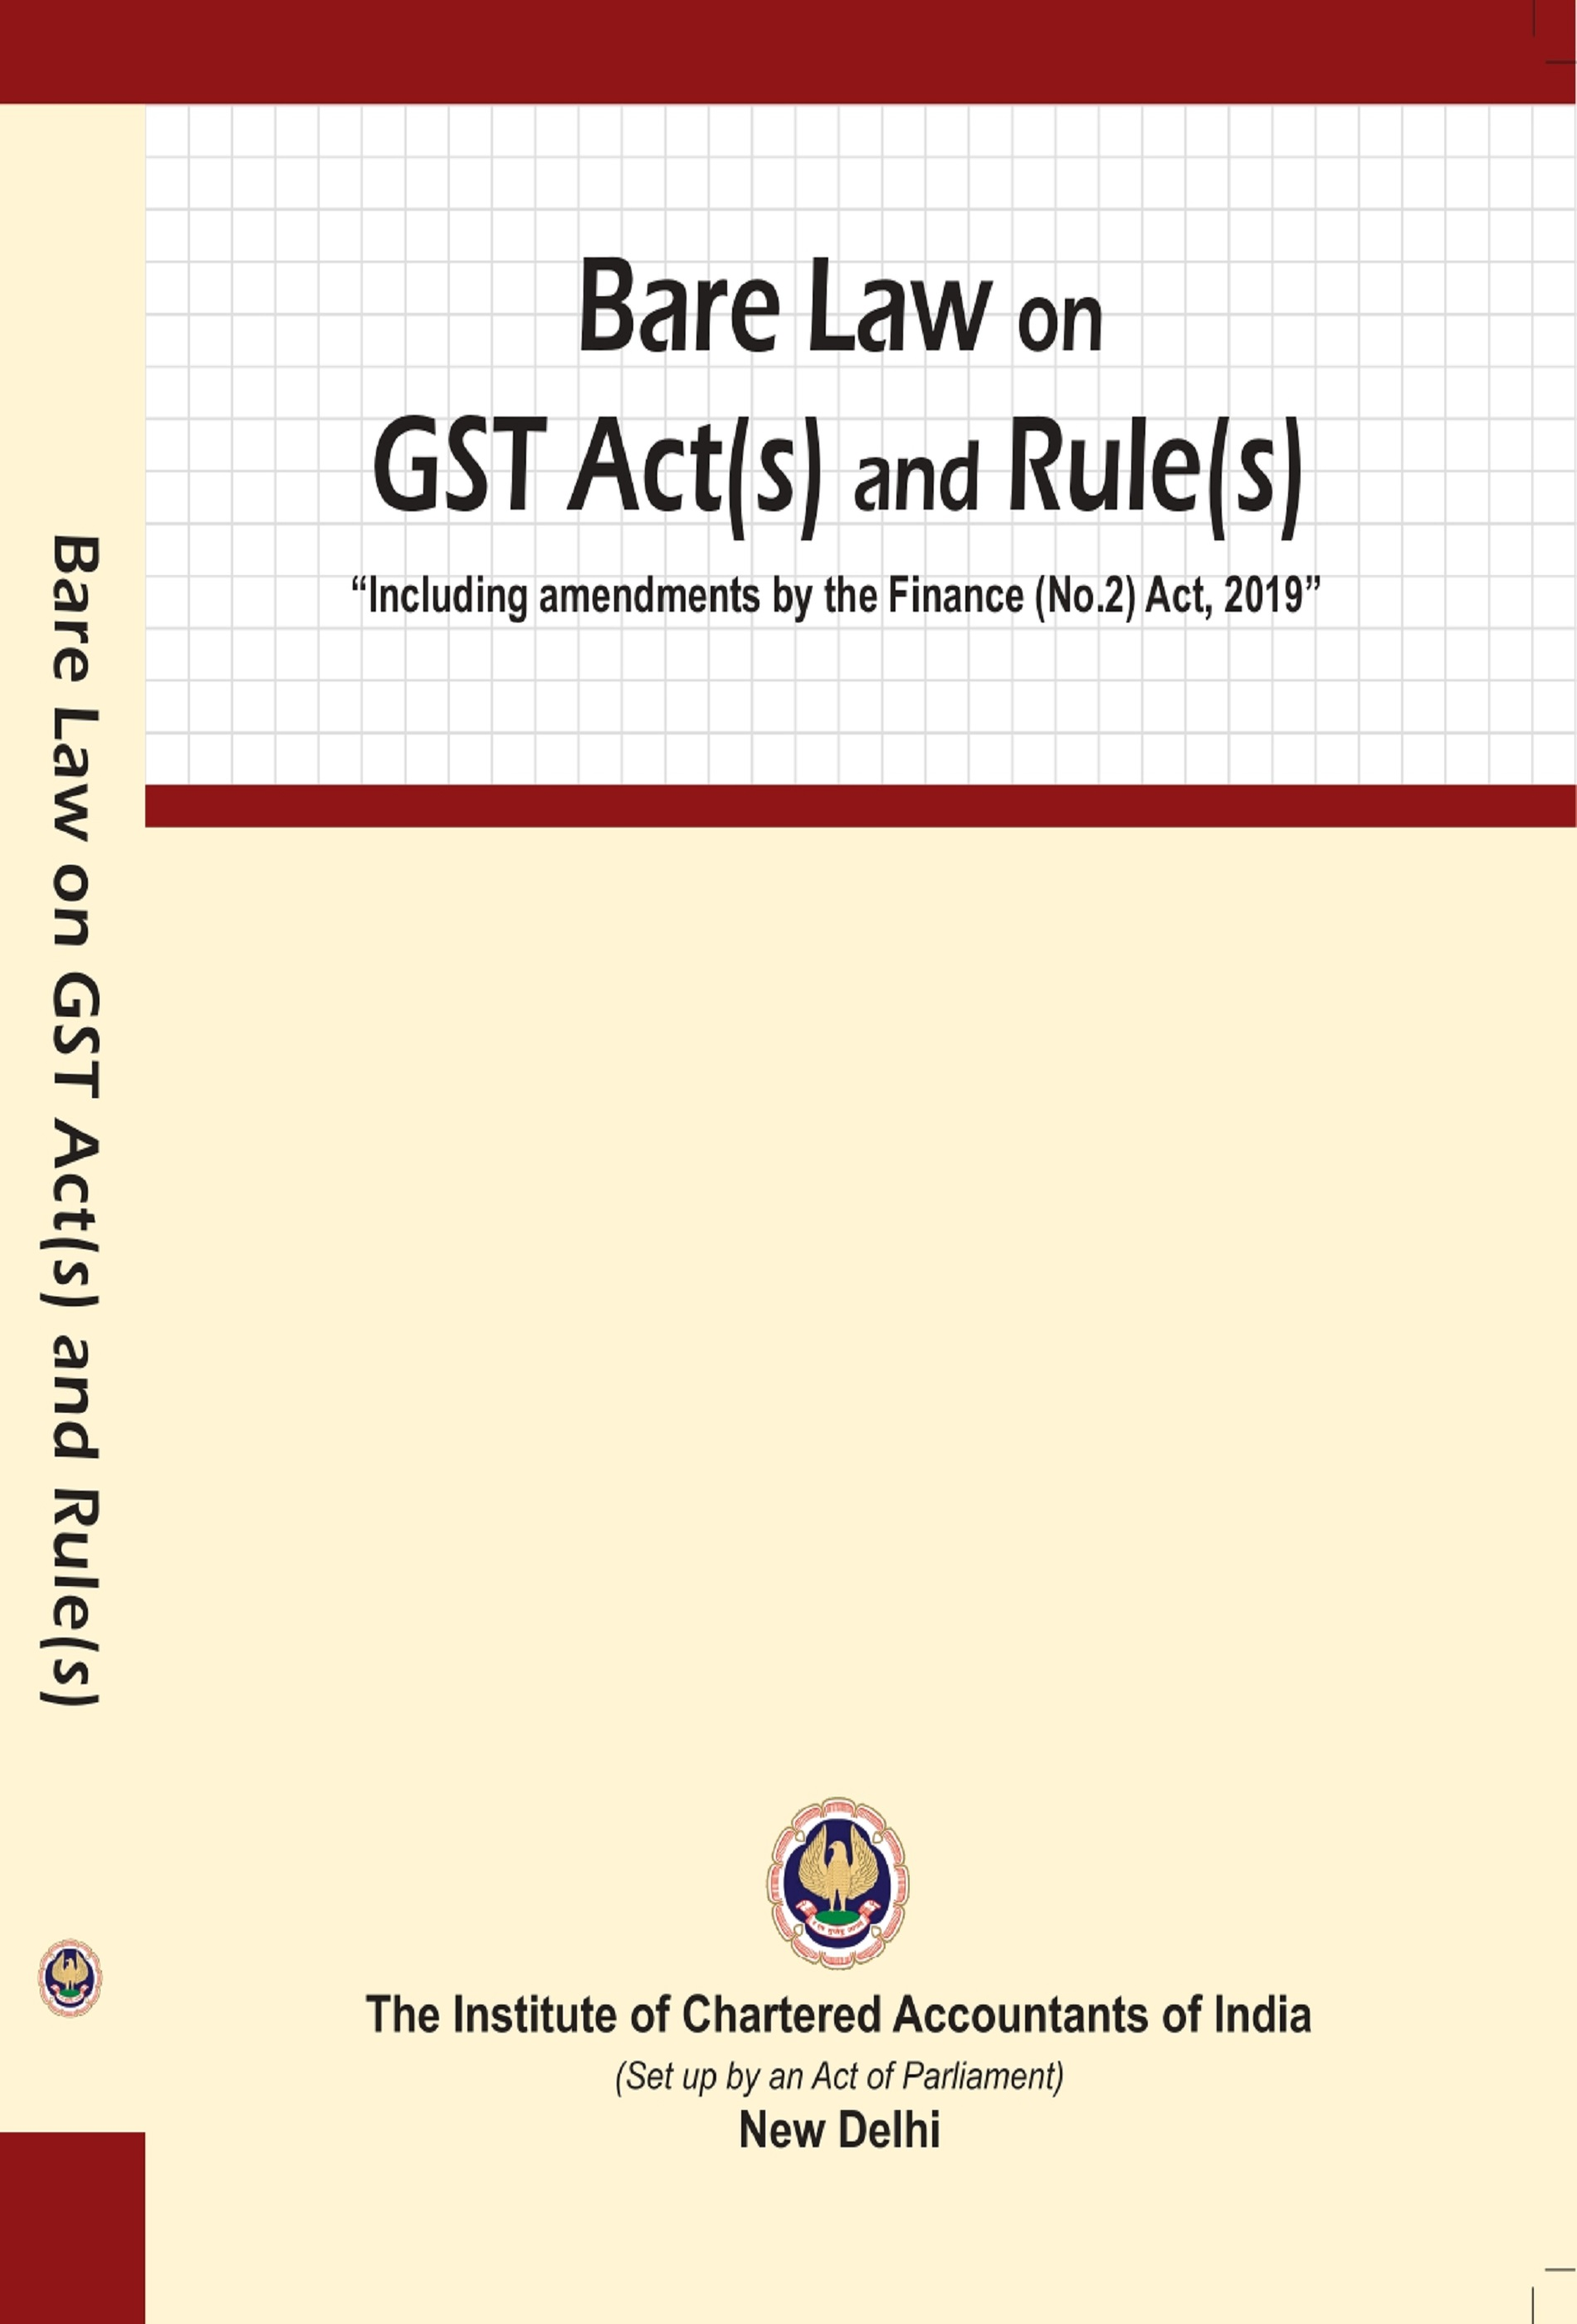 Bare Law on GST Act(s) and Rule(s) (October, 2019)